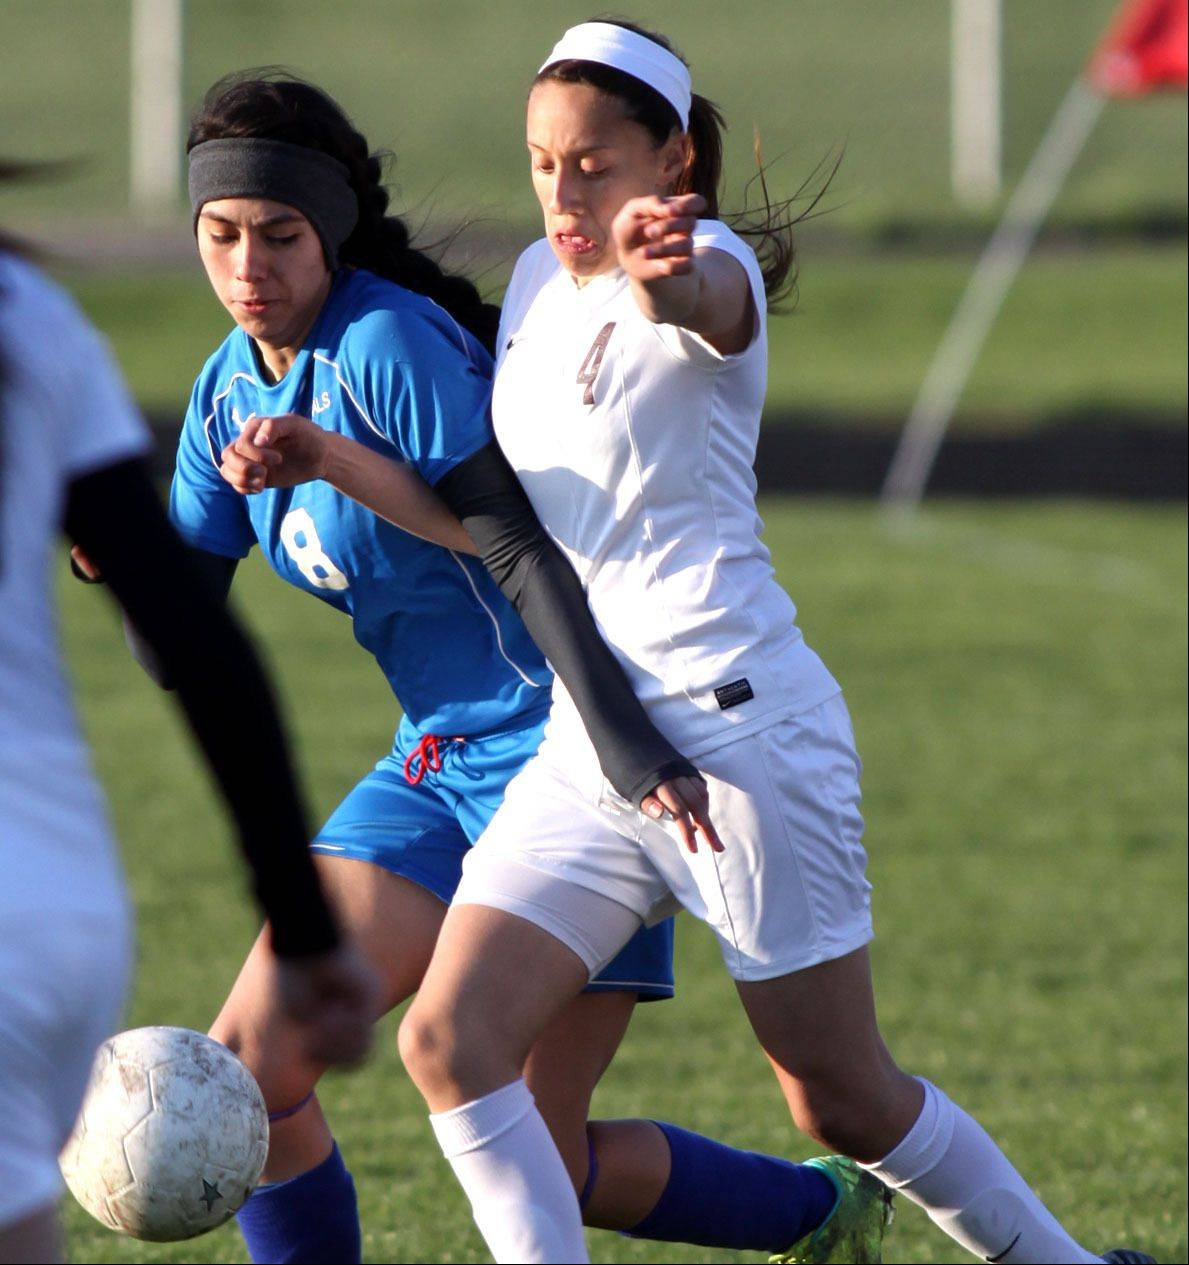 Larkin's Berenice Gomez, left, and Elgin's Gaby Delgado pursue the ball at Memorial Field in Elgin on Wednesday evening.